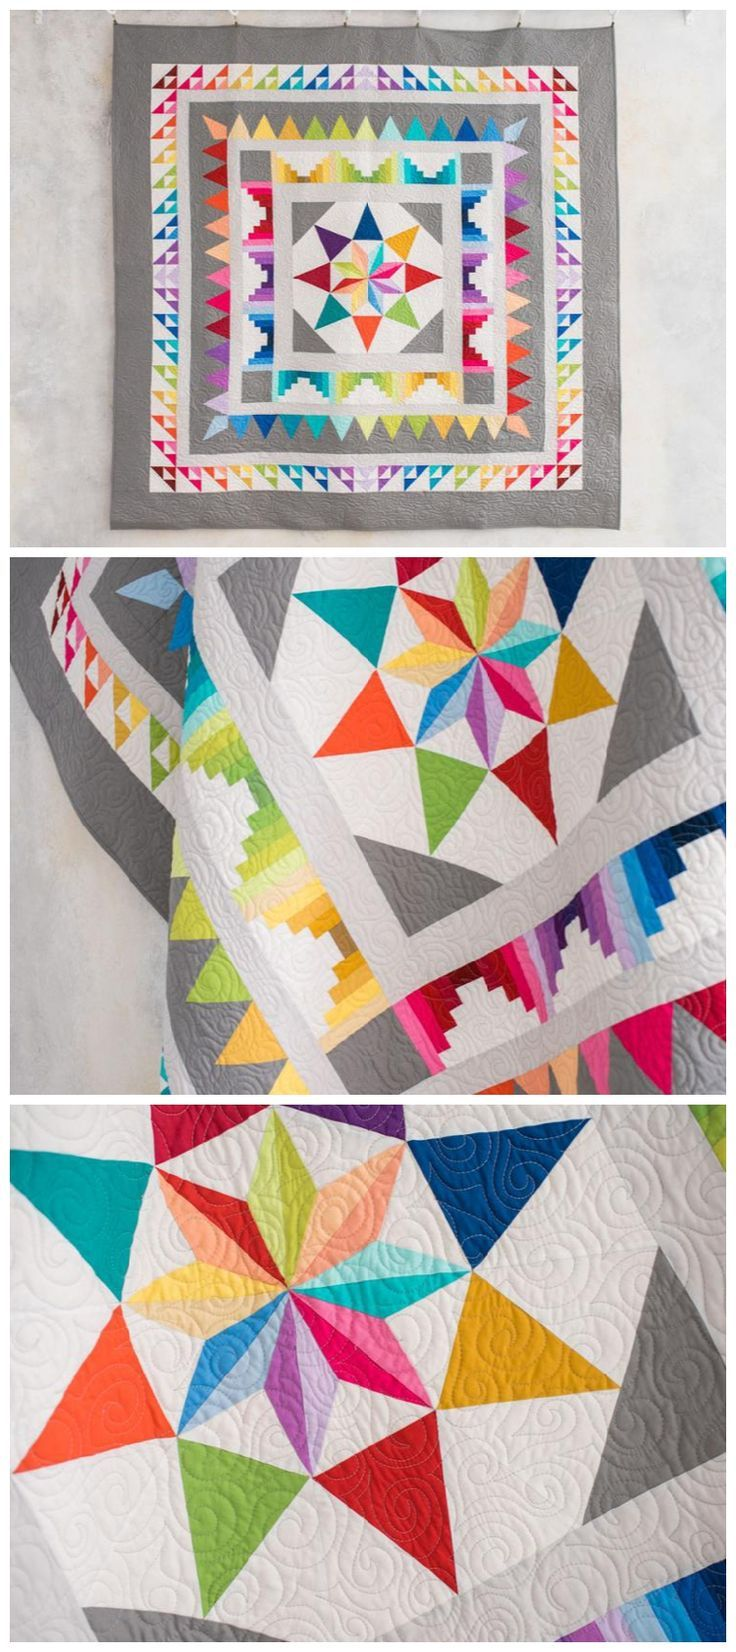 Kit Stoffe Per Patchwork.Frequency Quilt Kit By Craftsy Featuring Bright And Modern